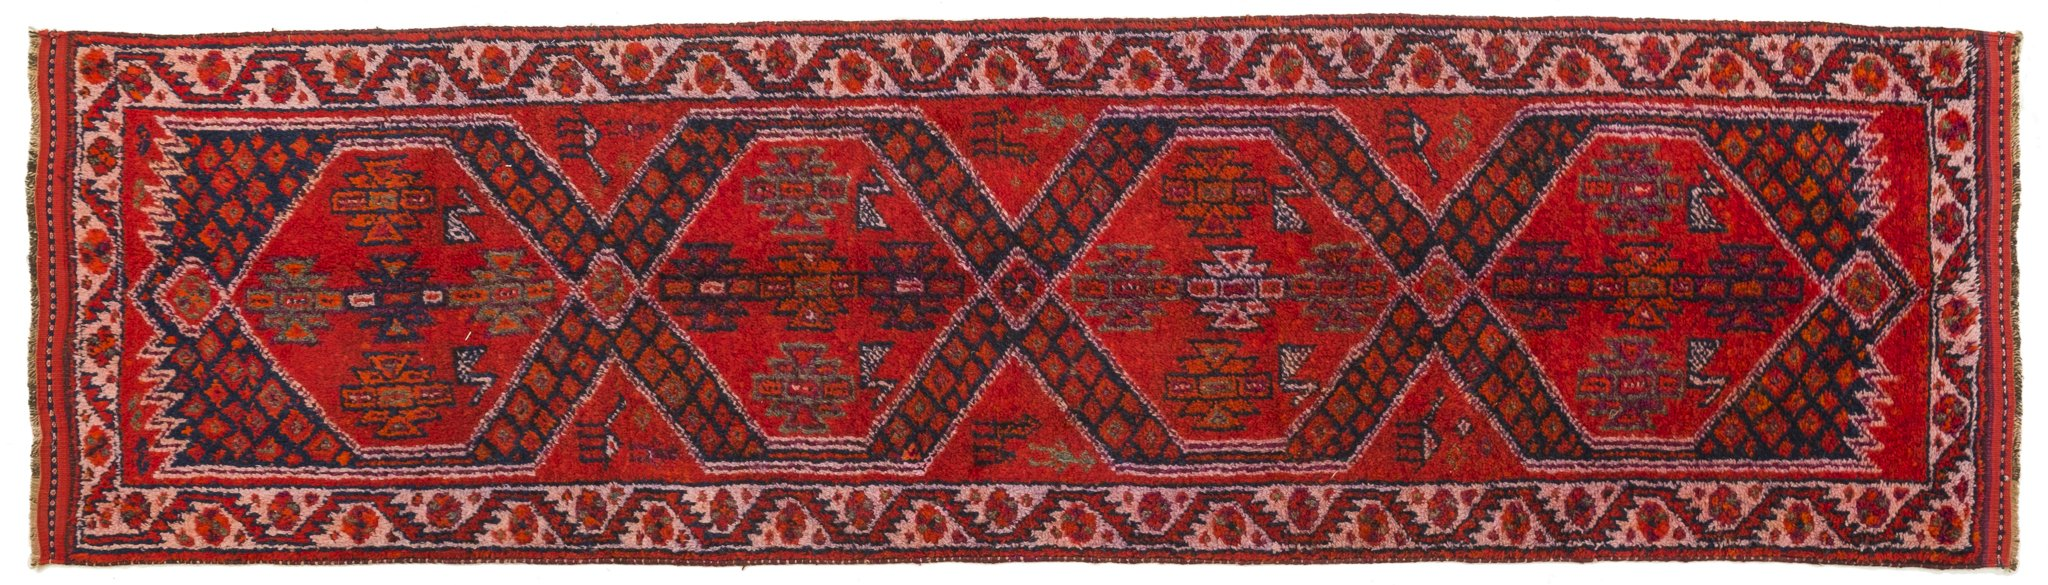 Vintage Turkish Runner Rug Innocenta